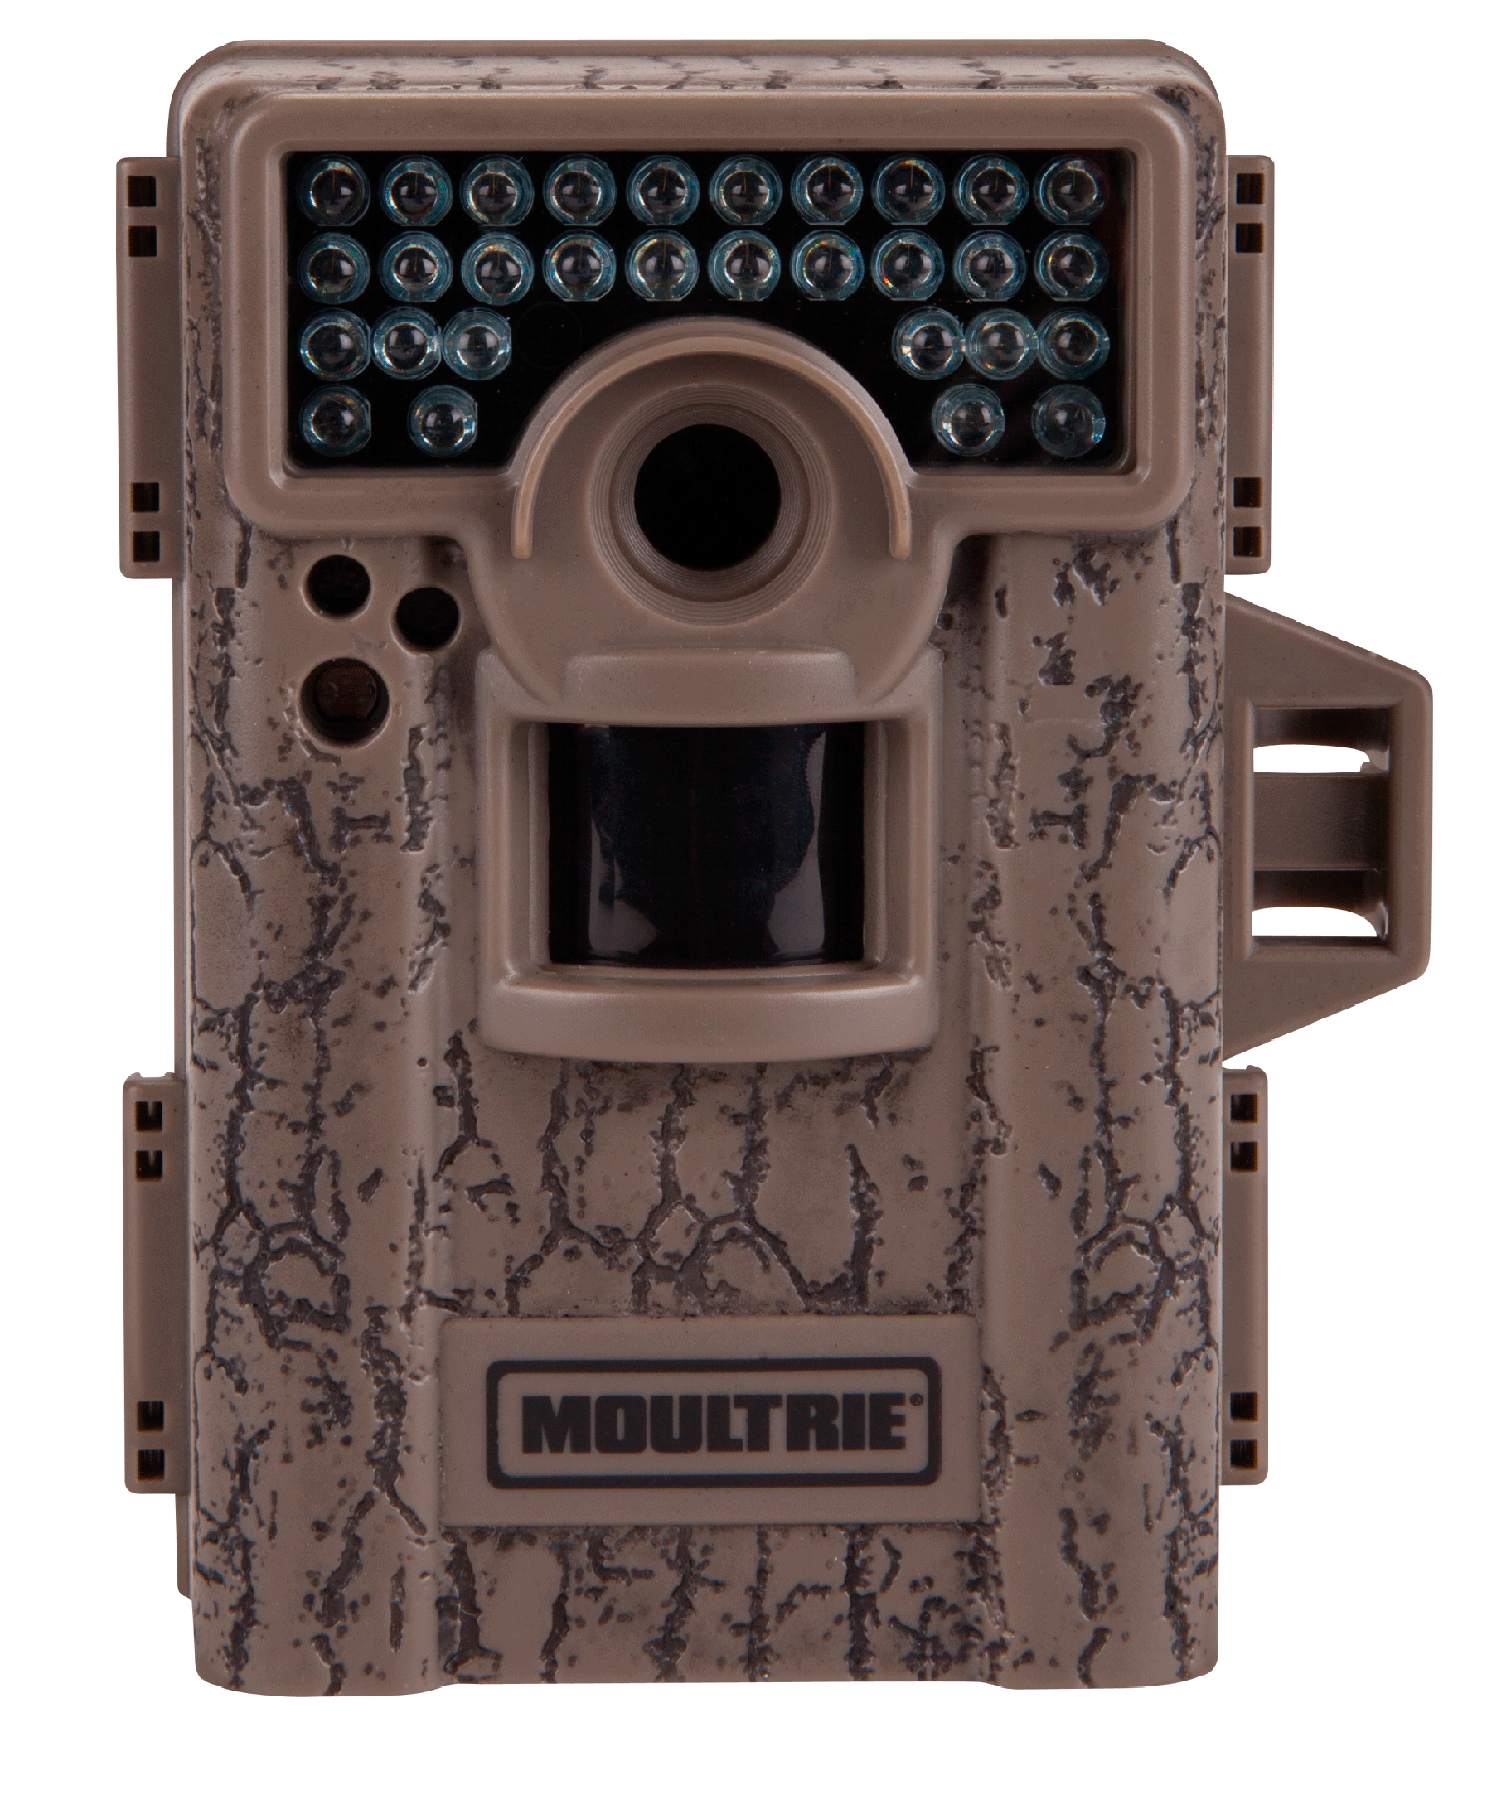 Moultrie MCG-12631 M-880 Camera 8MP 8AA Photo/Video Infrared Flash